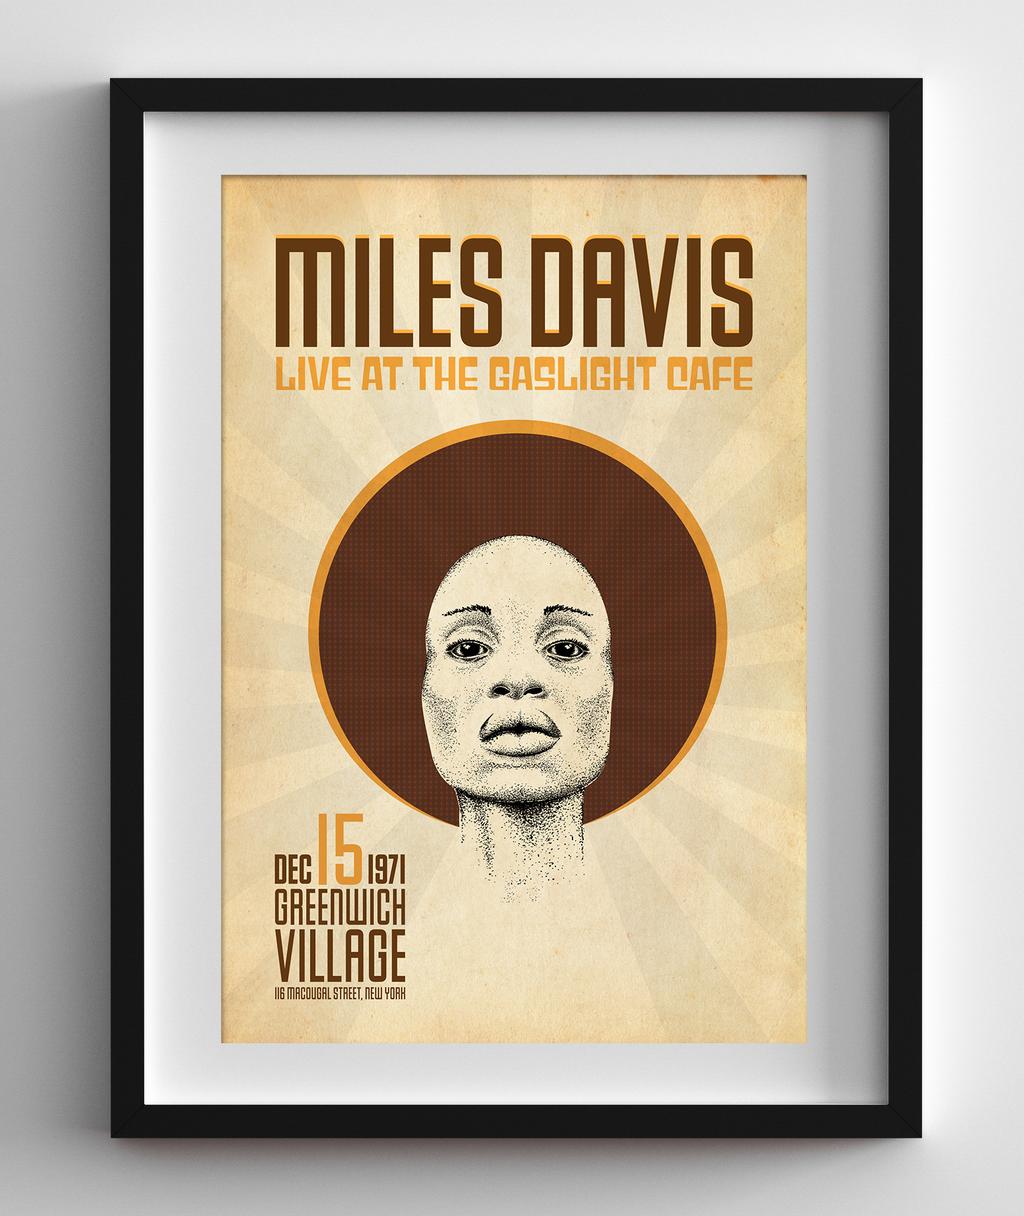 Miles Davis Live at the Gaslight Cafe in New York, 1971 Concert Print